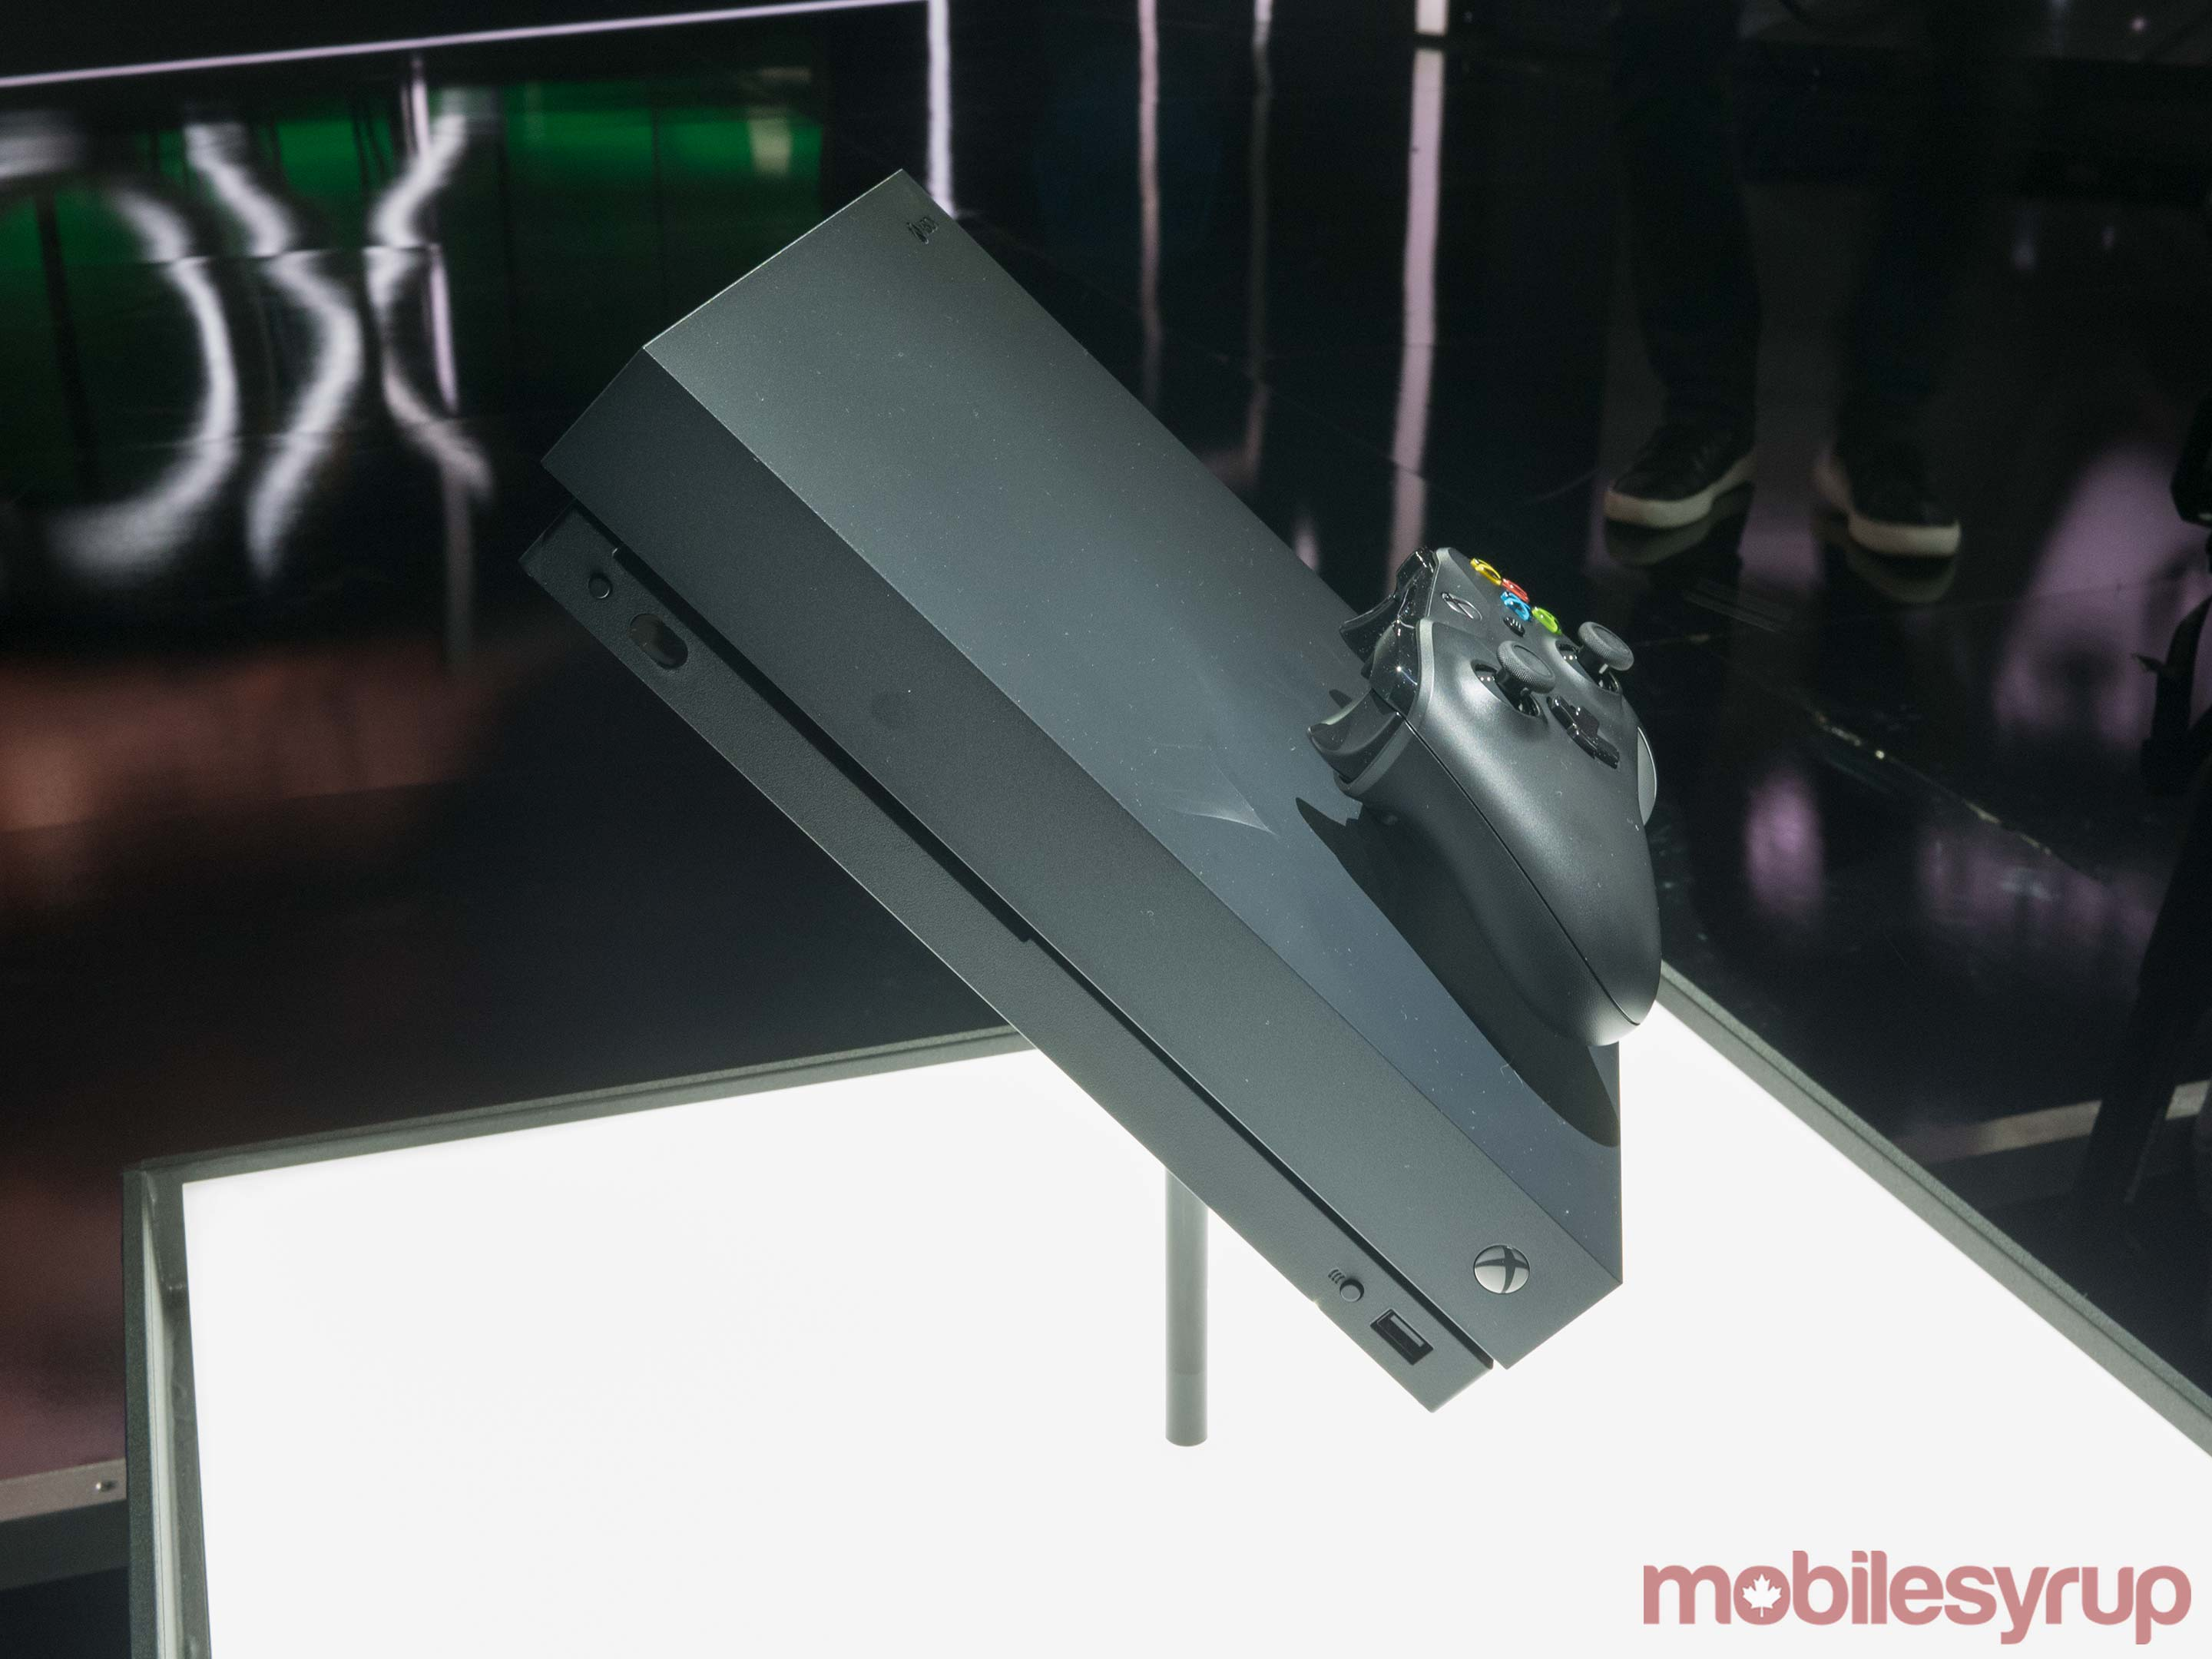 Xbox One X console side view